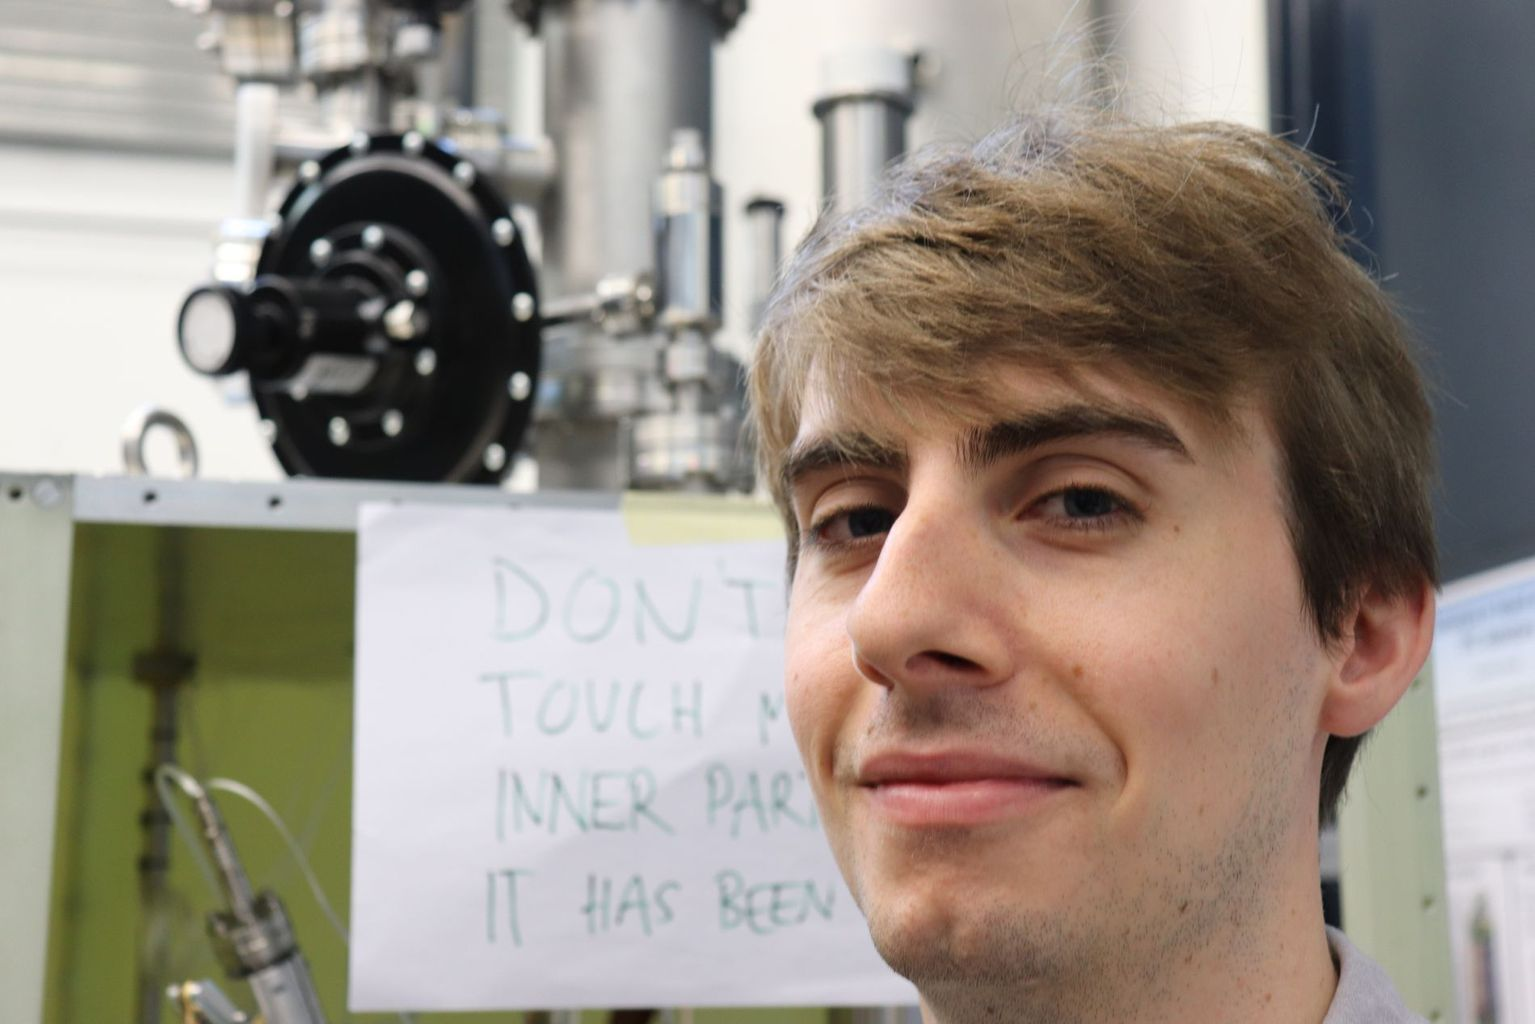 Dr. Callum Wilkinson (29) works in the research group of Prof. Antonio Ereditato at the University of Bern and prepares the DUNE expert for neutrinos research.